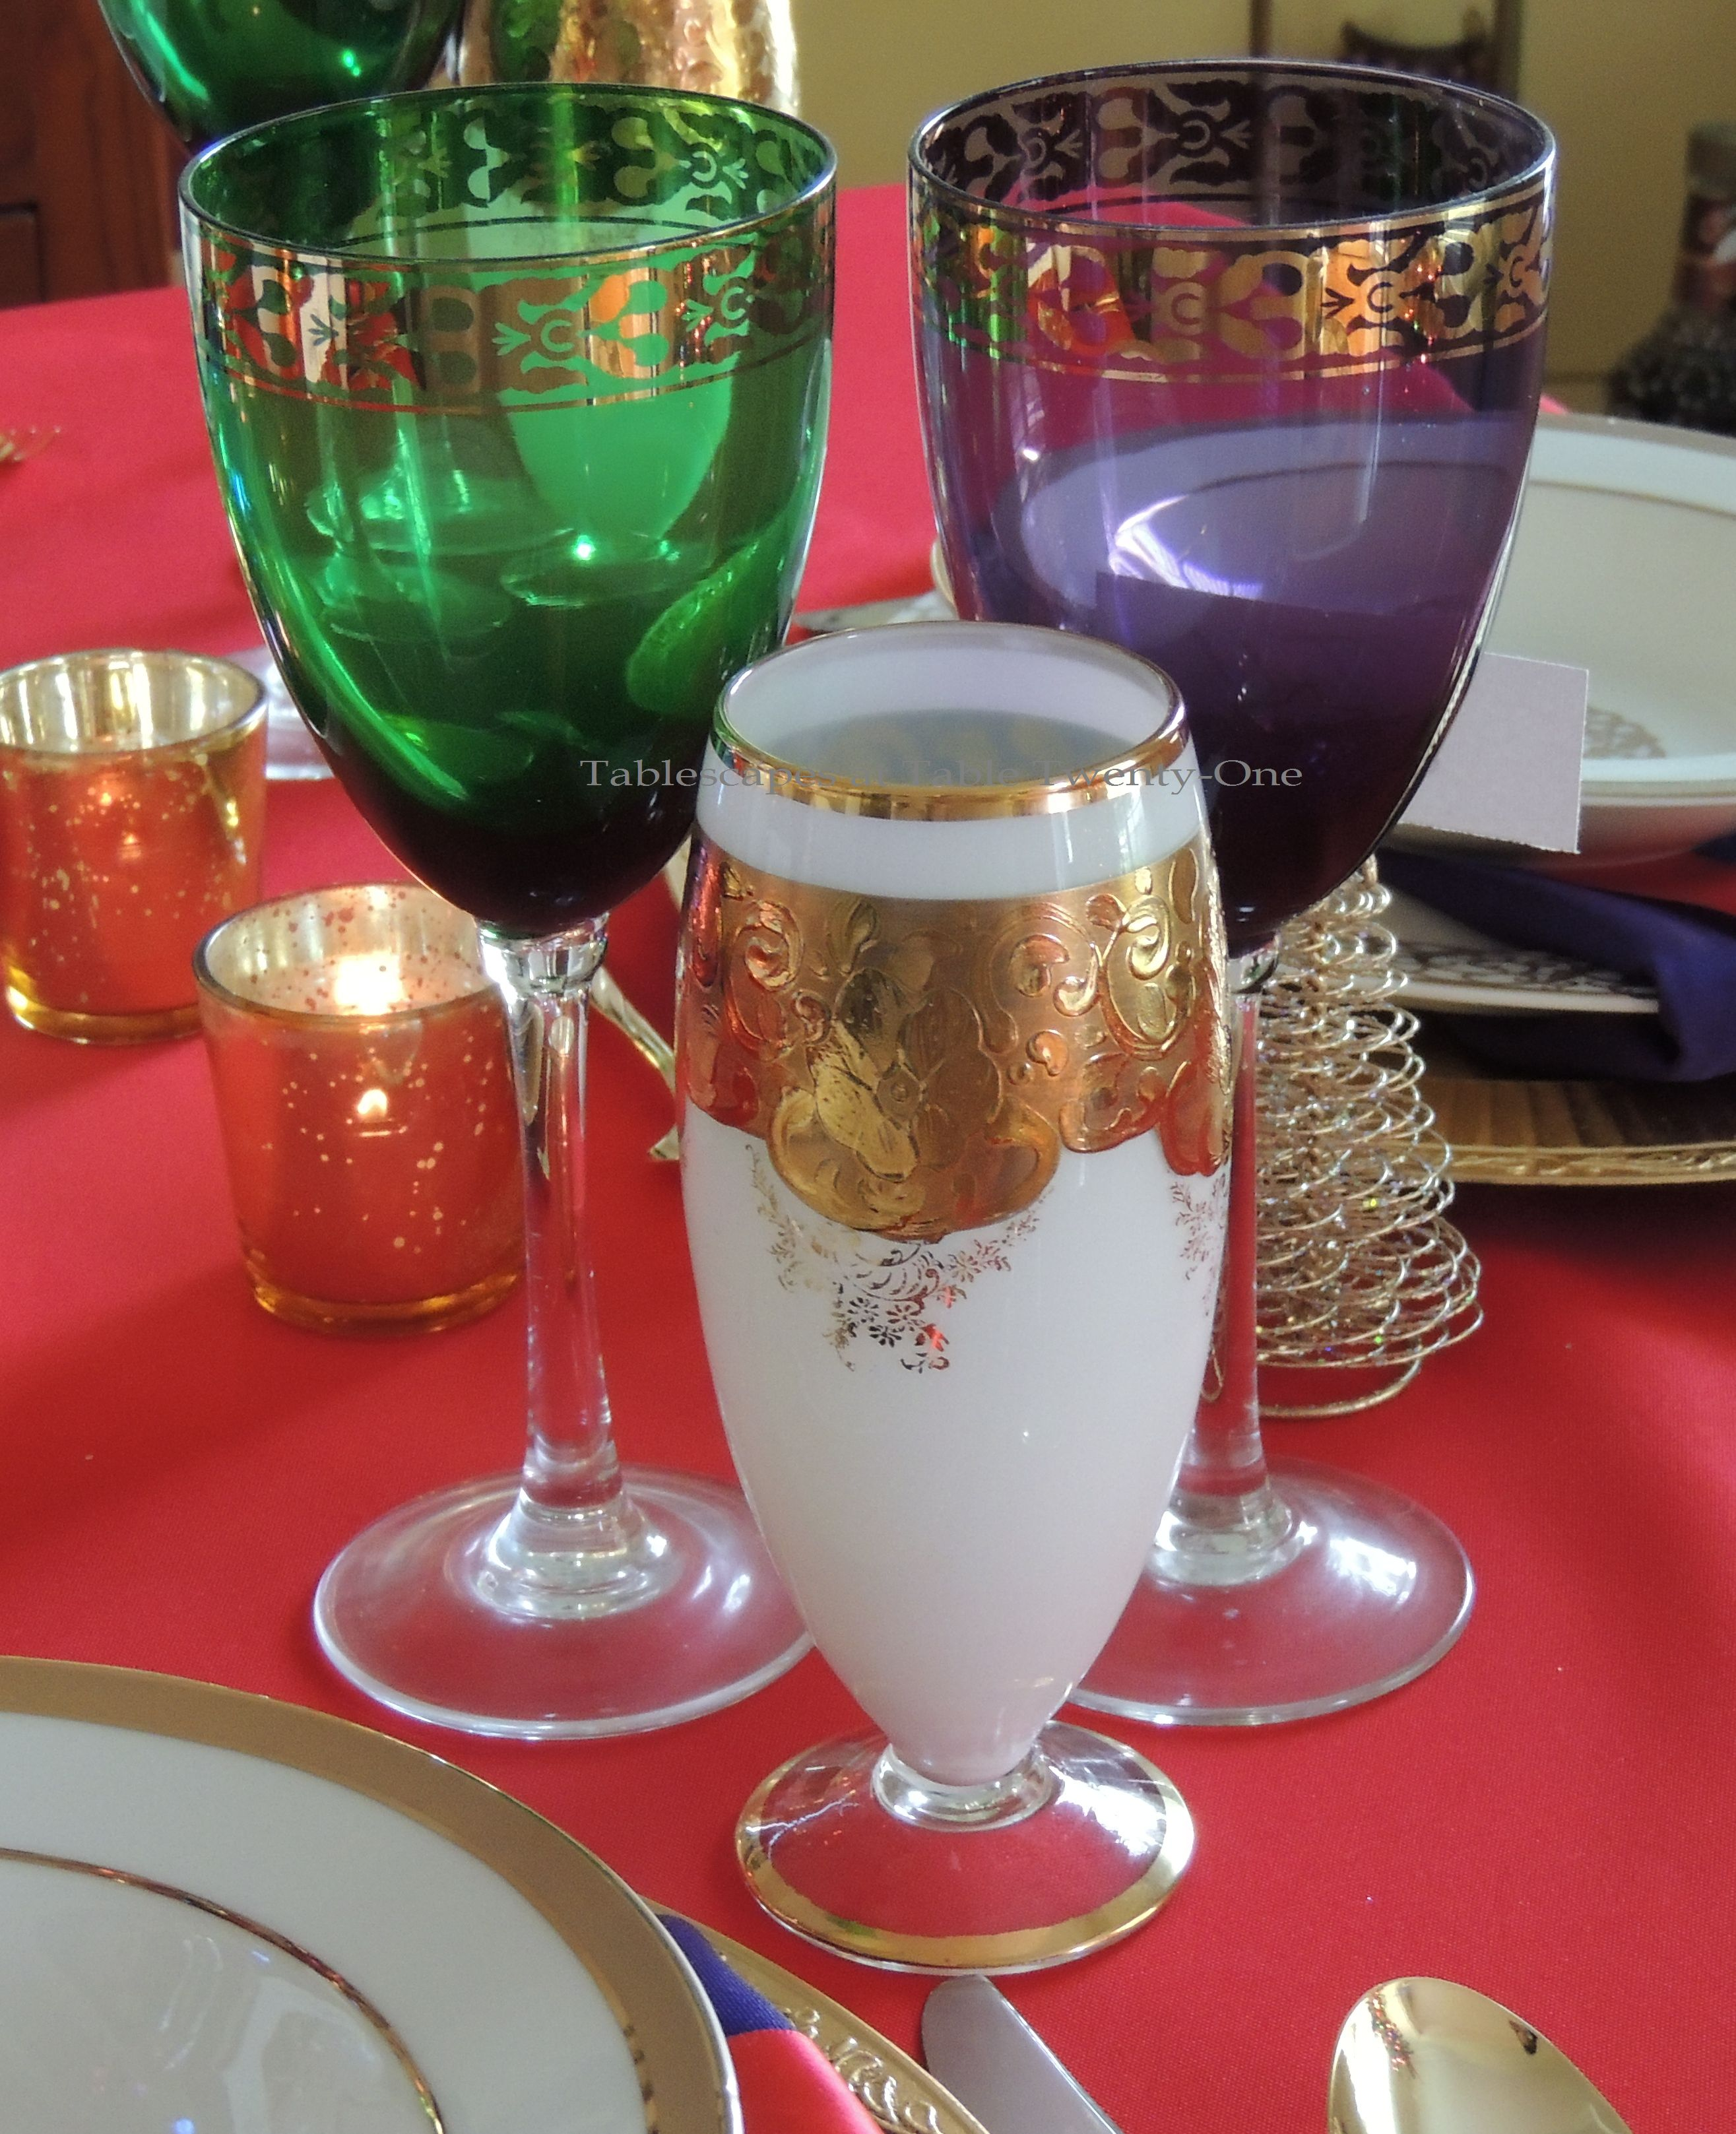 Tablescapes at Table Twenty-One, Merry & Bright Multi-Color Christmas: Stemware trio